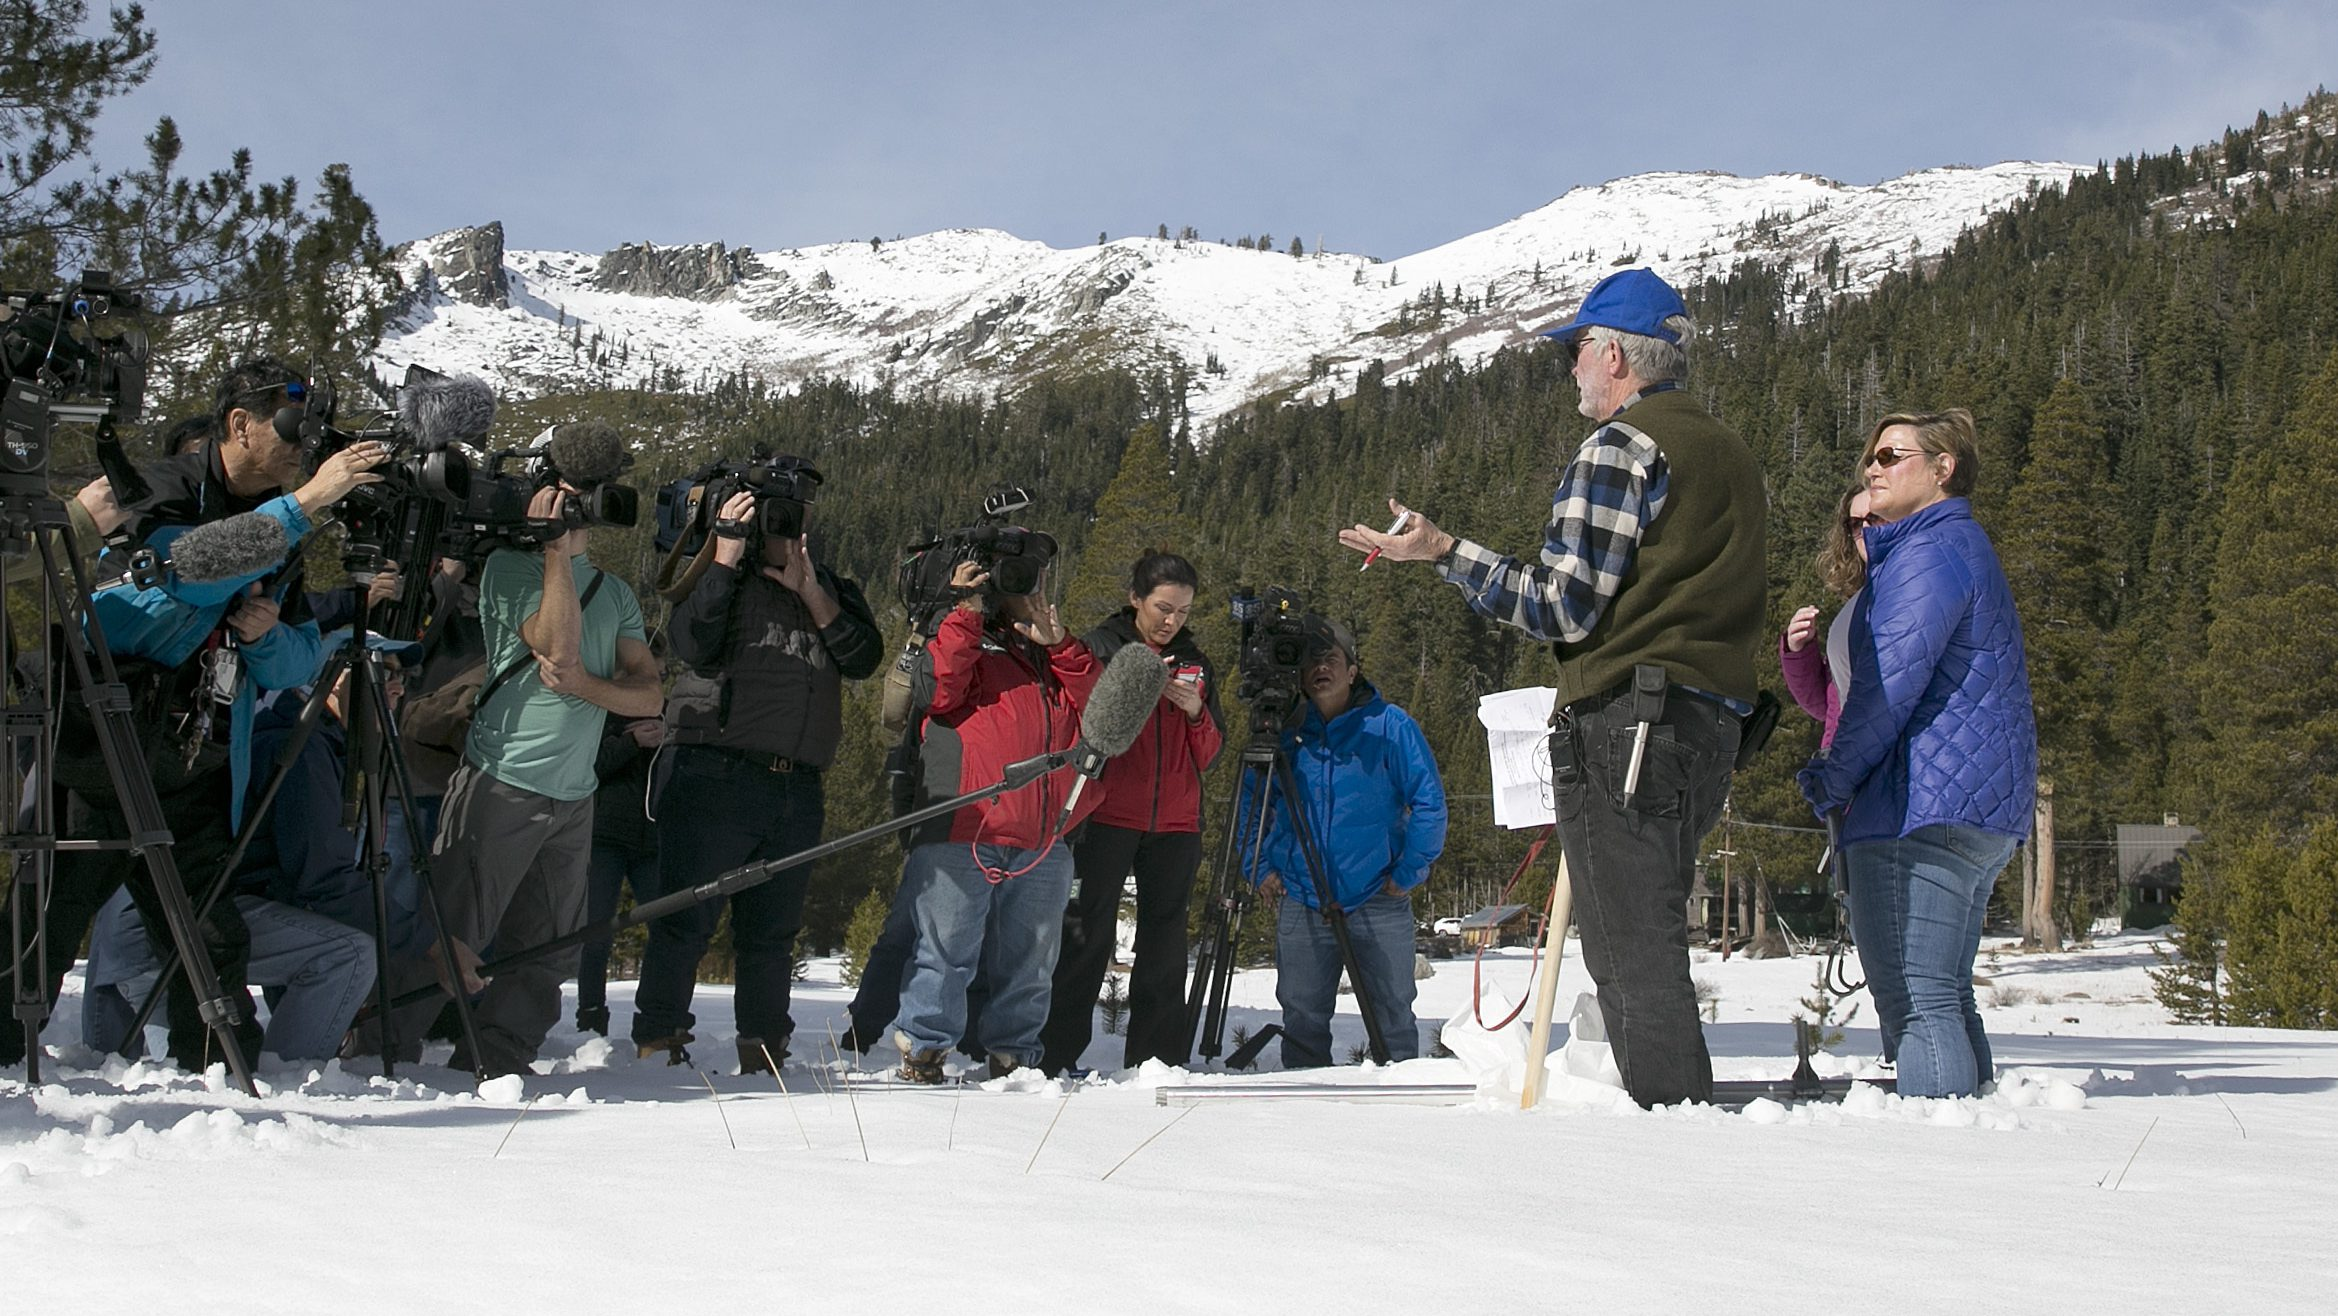 Researchers conduct a snow survey in the Sierra Nevada mountains in California.